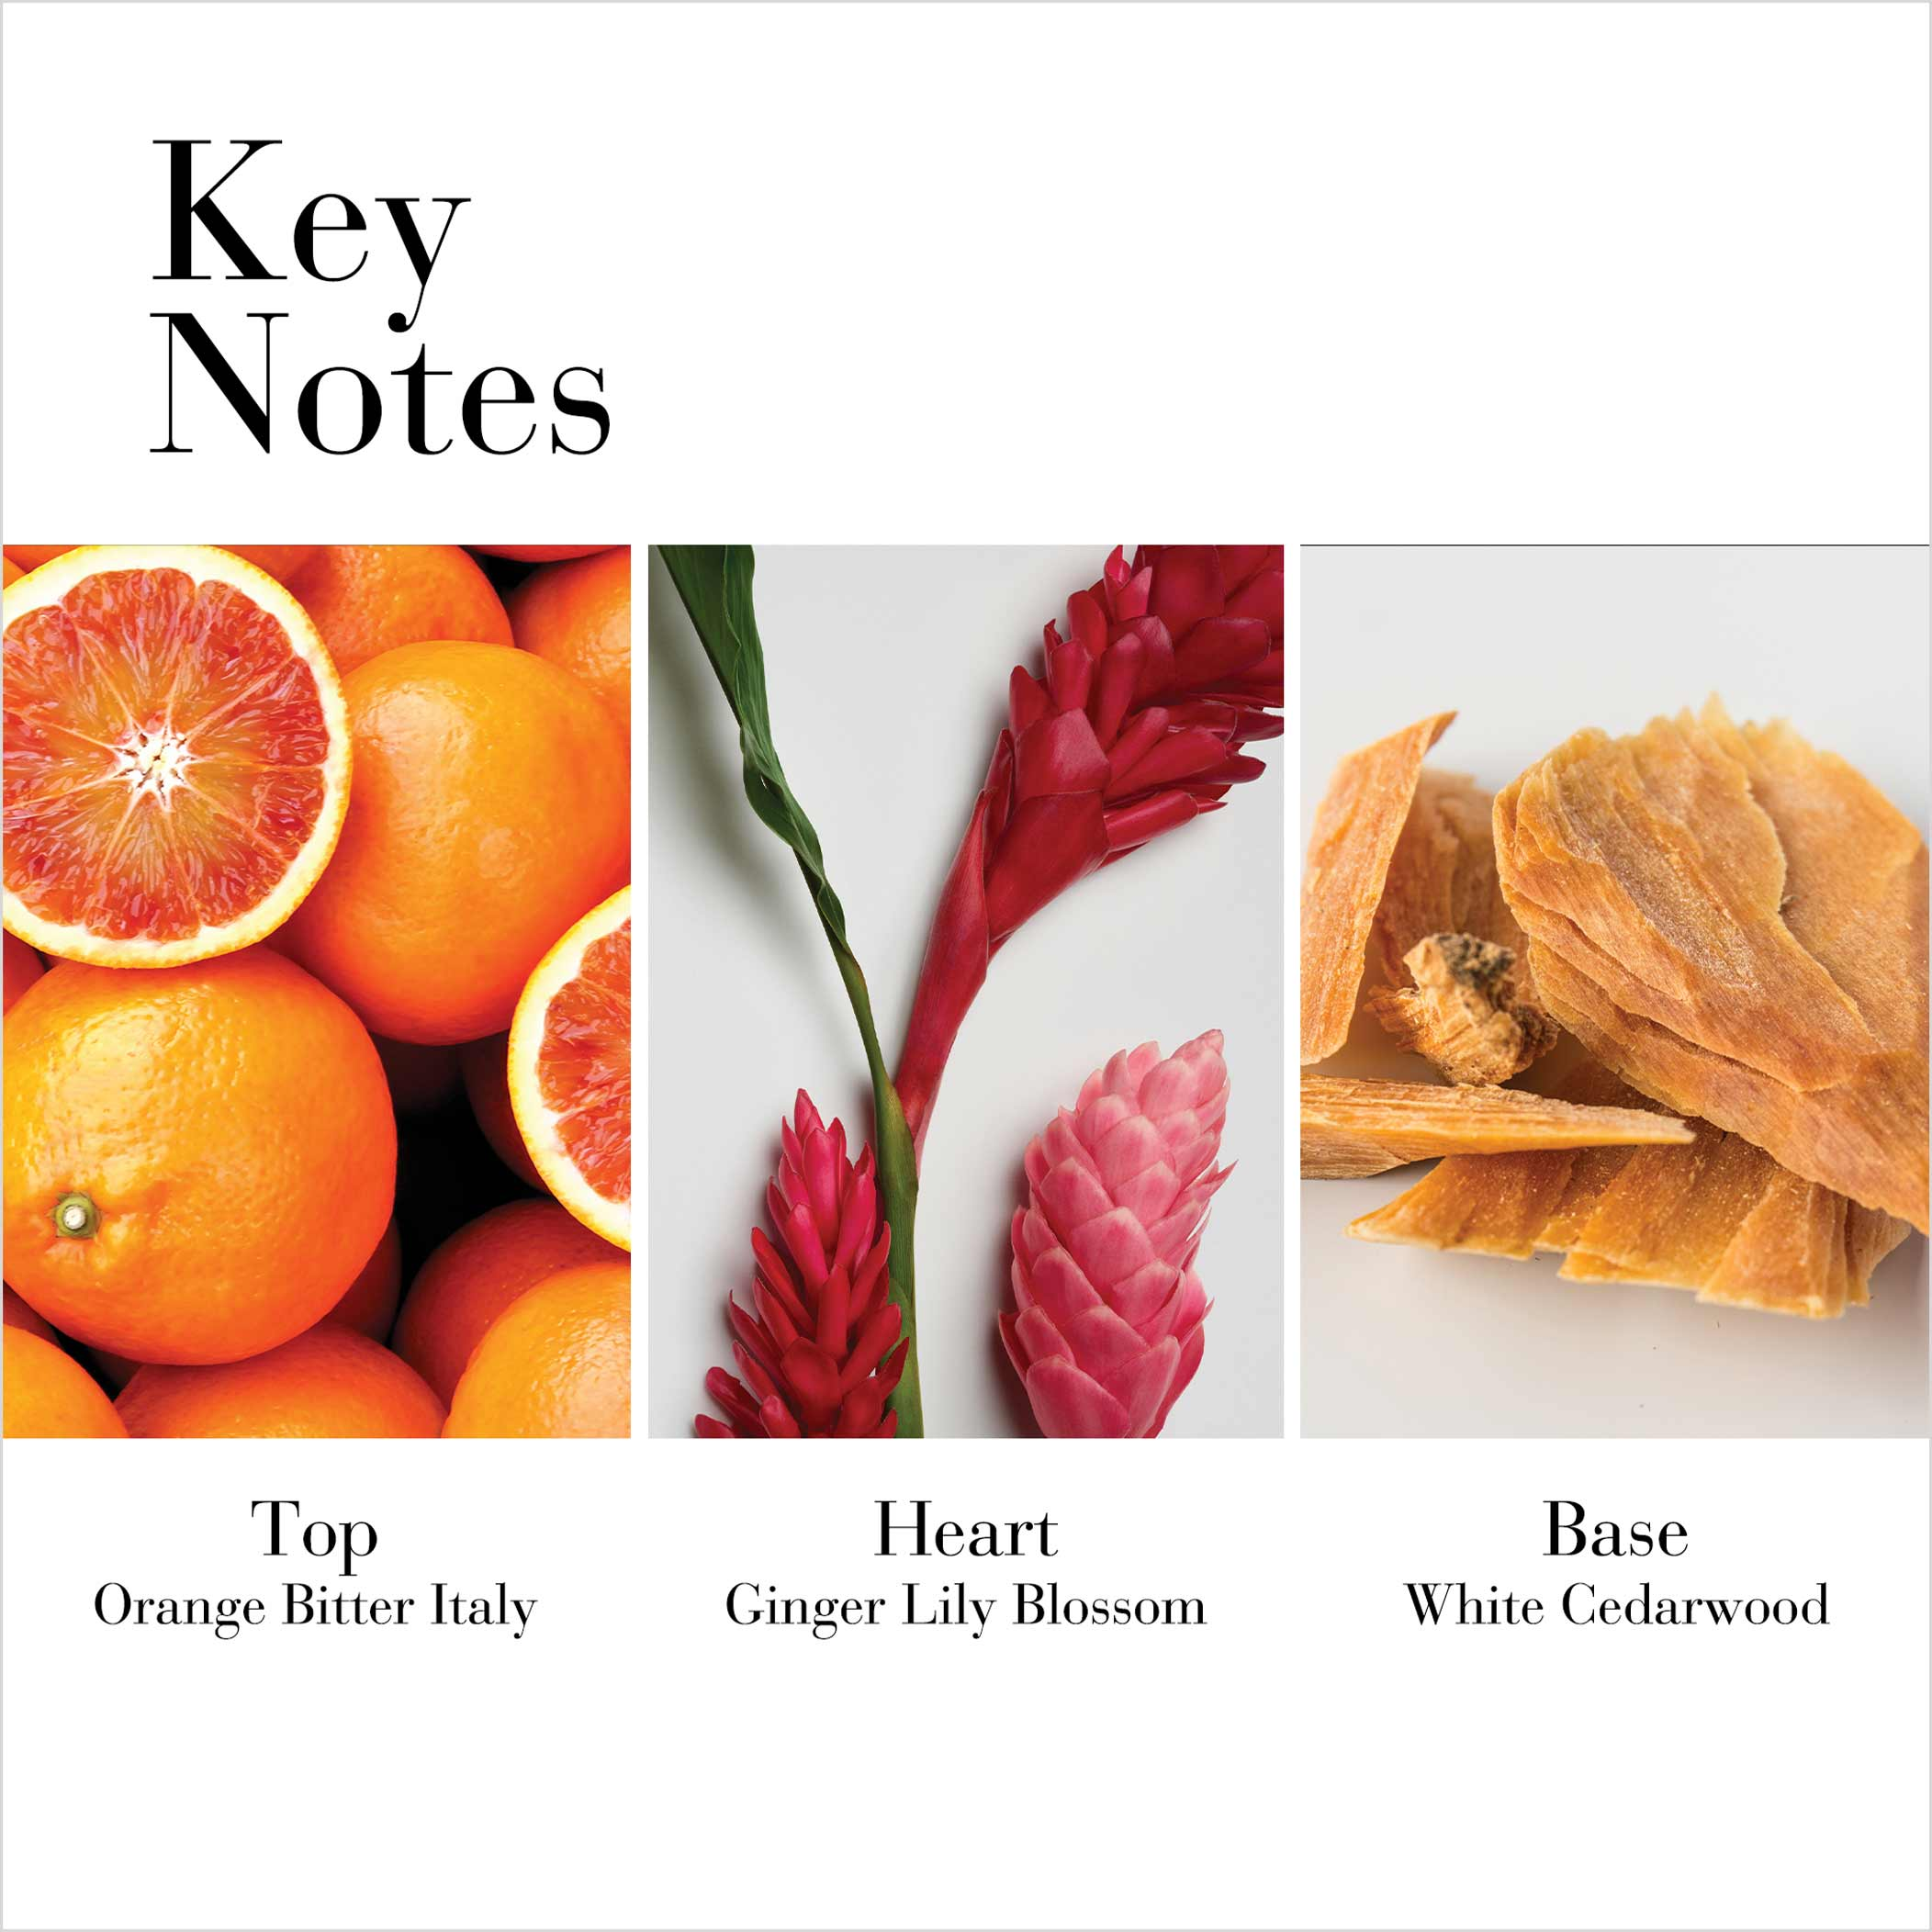 Key Notes: Orange Bitter Italy, Ginger Lily Blossom, Cedarwood